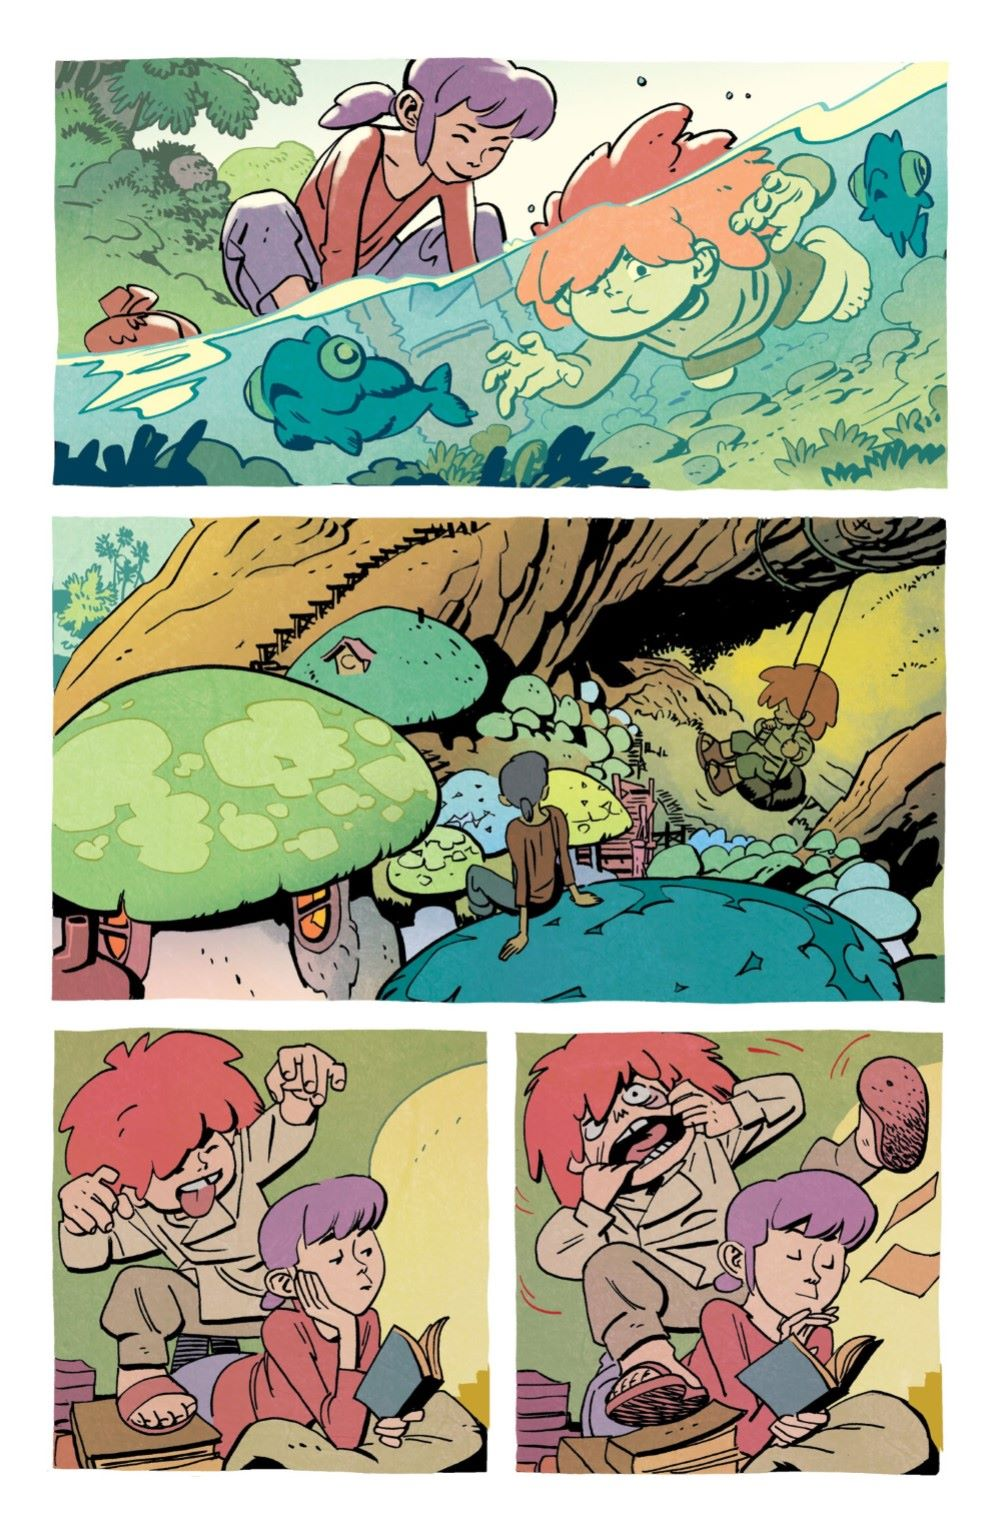 JONNA-2-MARKETING-05 ComicList Previews: JONNA AND THE UNPOSSIBLE MONSTERS #2